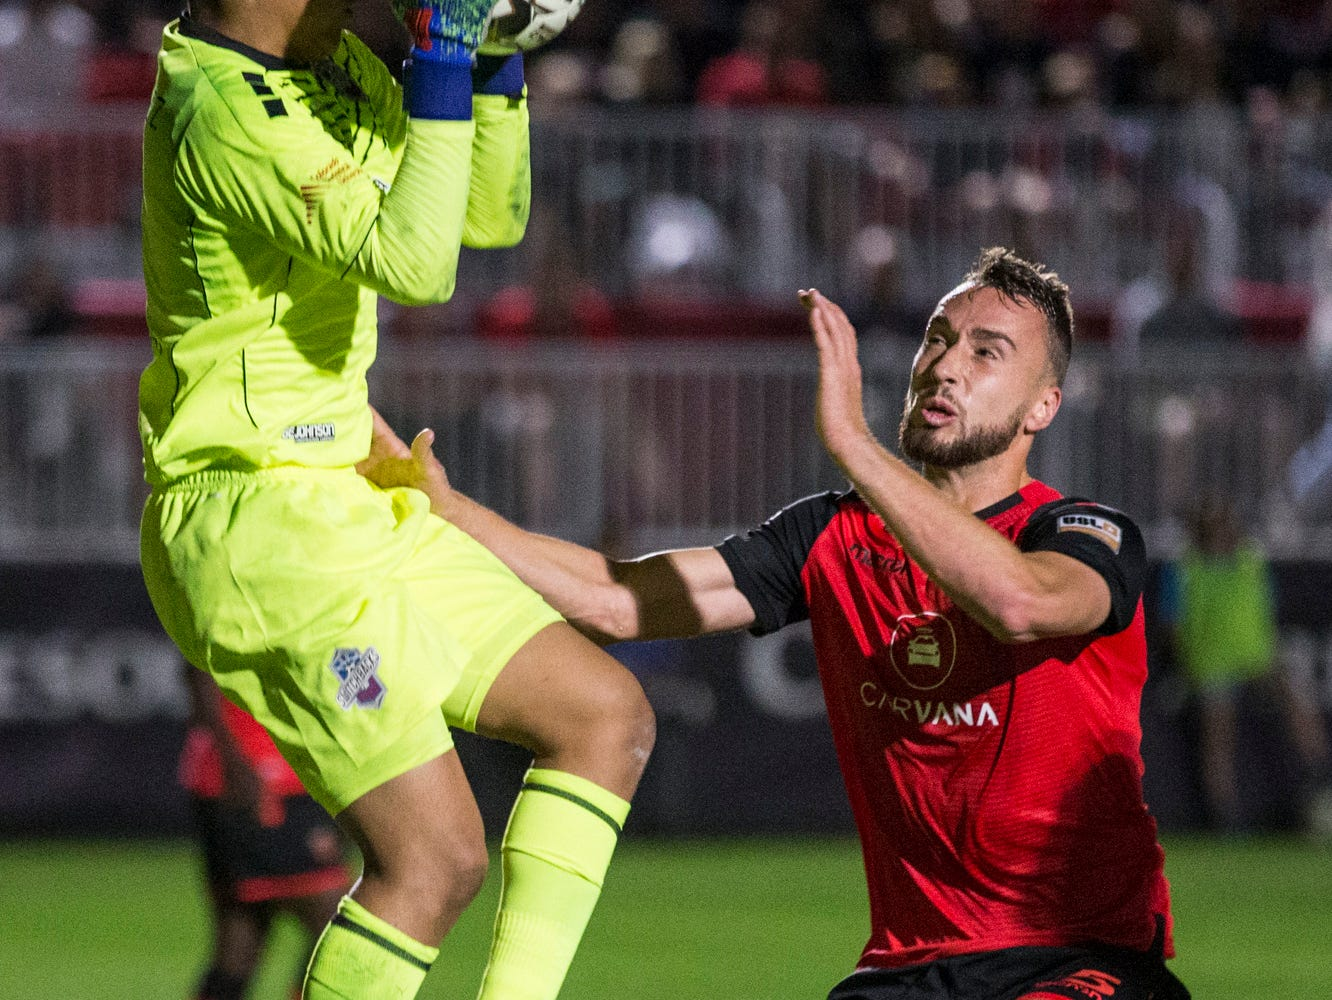 Colorado Springs' Abraham Rodriguez makes a save against Phoenix Rising in the first half on Saturday, Mar. 30, 2019, at Casino Arizona Field in Tempe, Ariz.